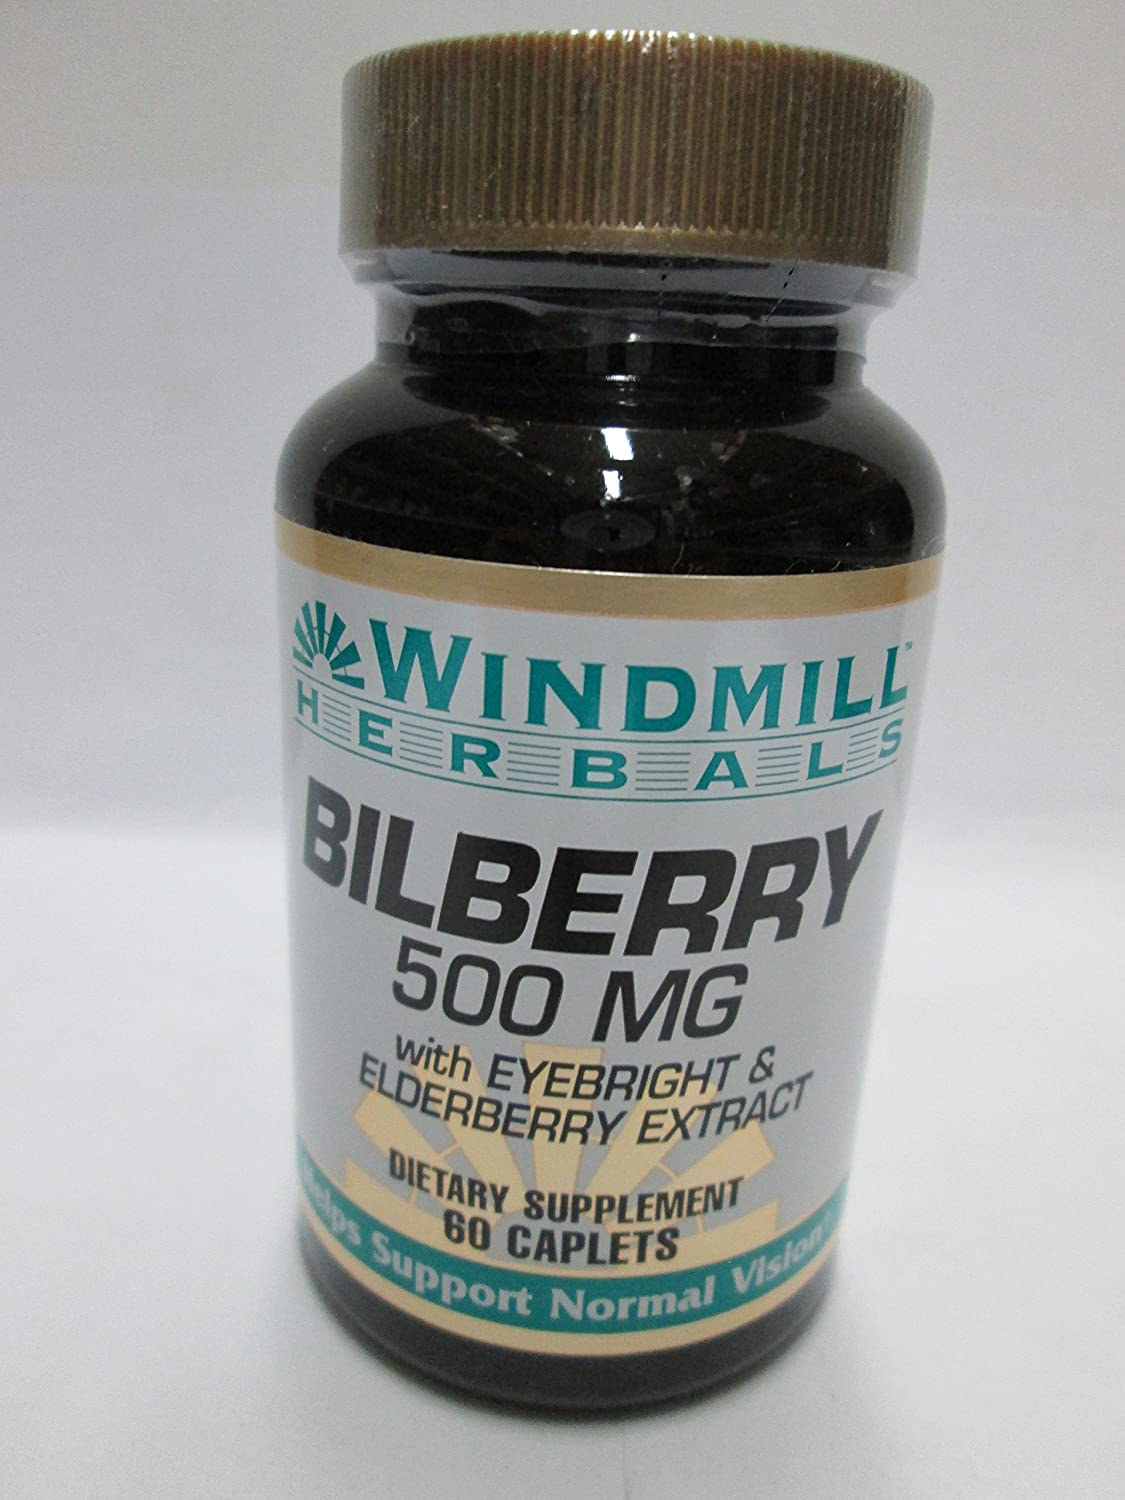 Windmill Bilberry 500 Mg Capsules Supports Normal Vision - 60 Ea